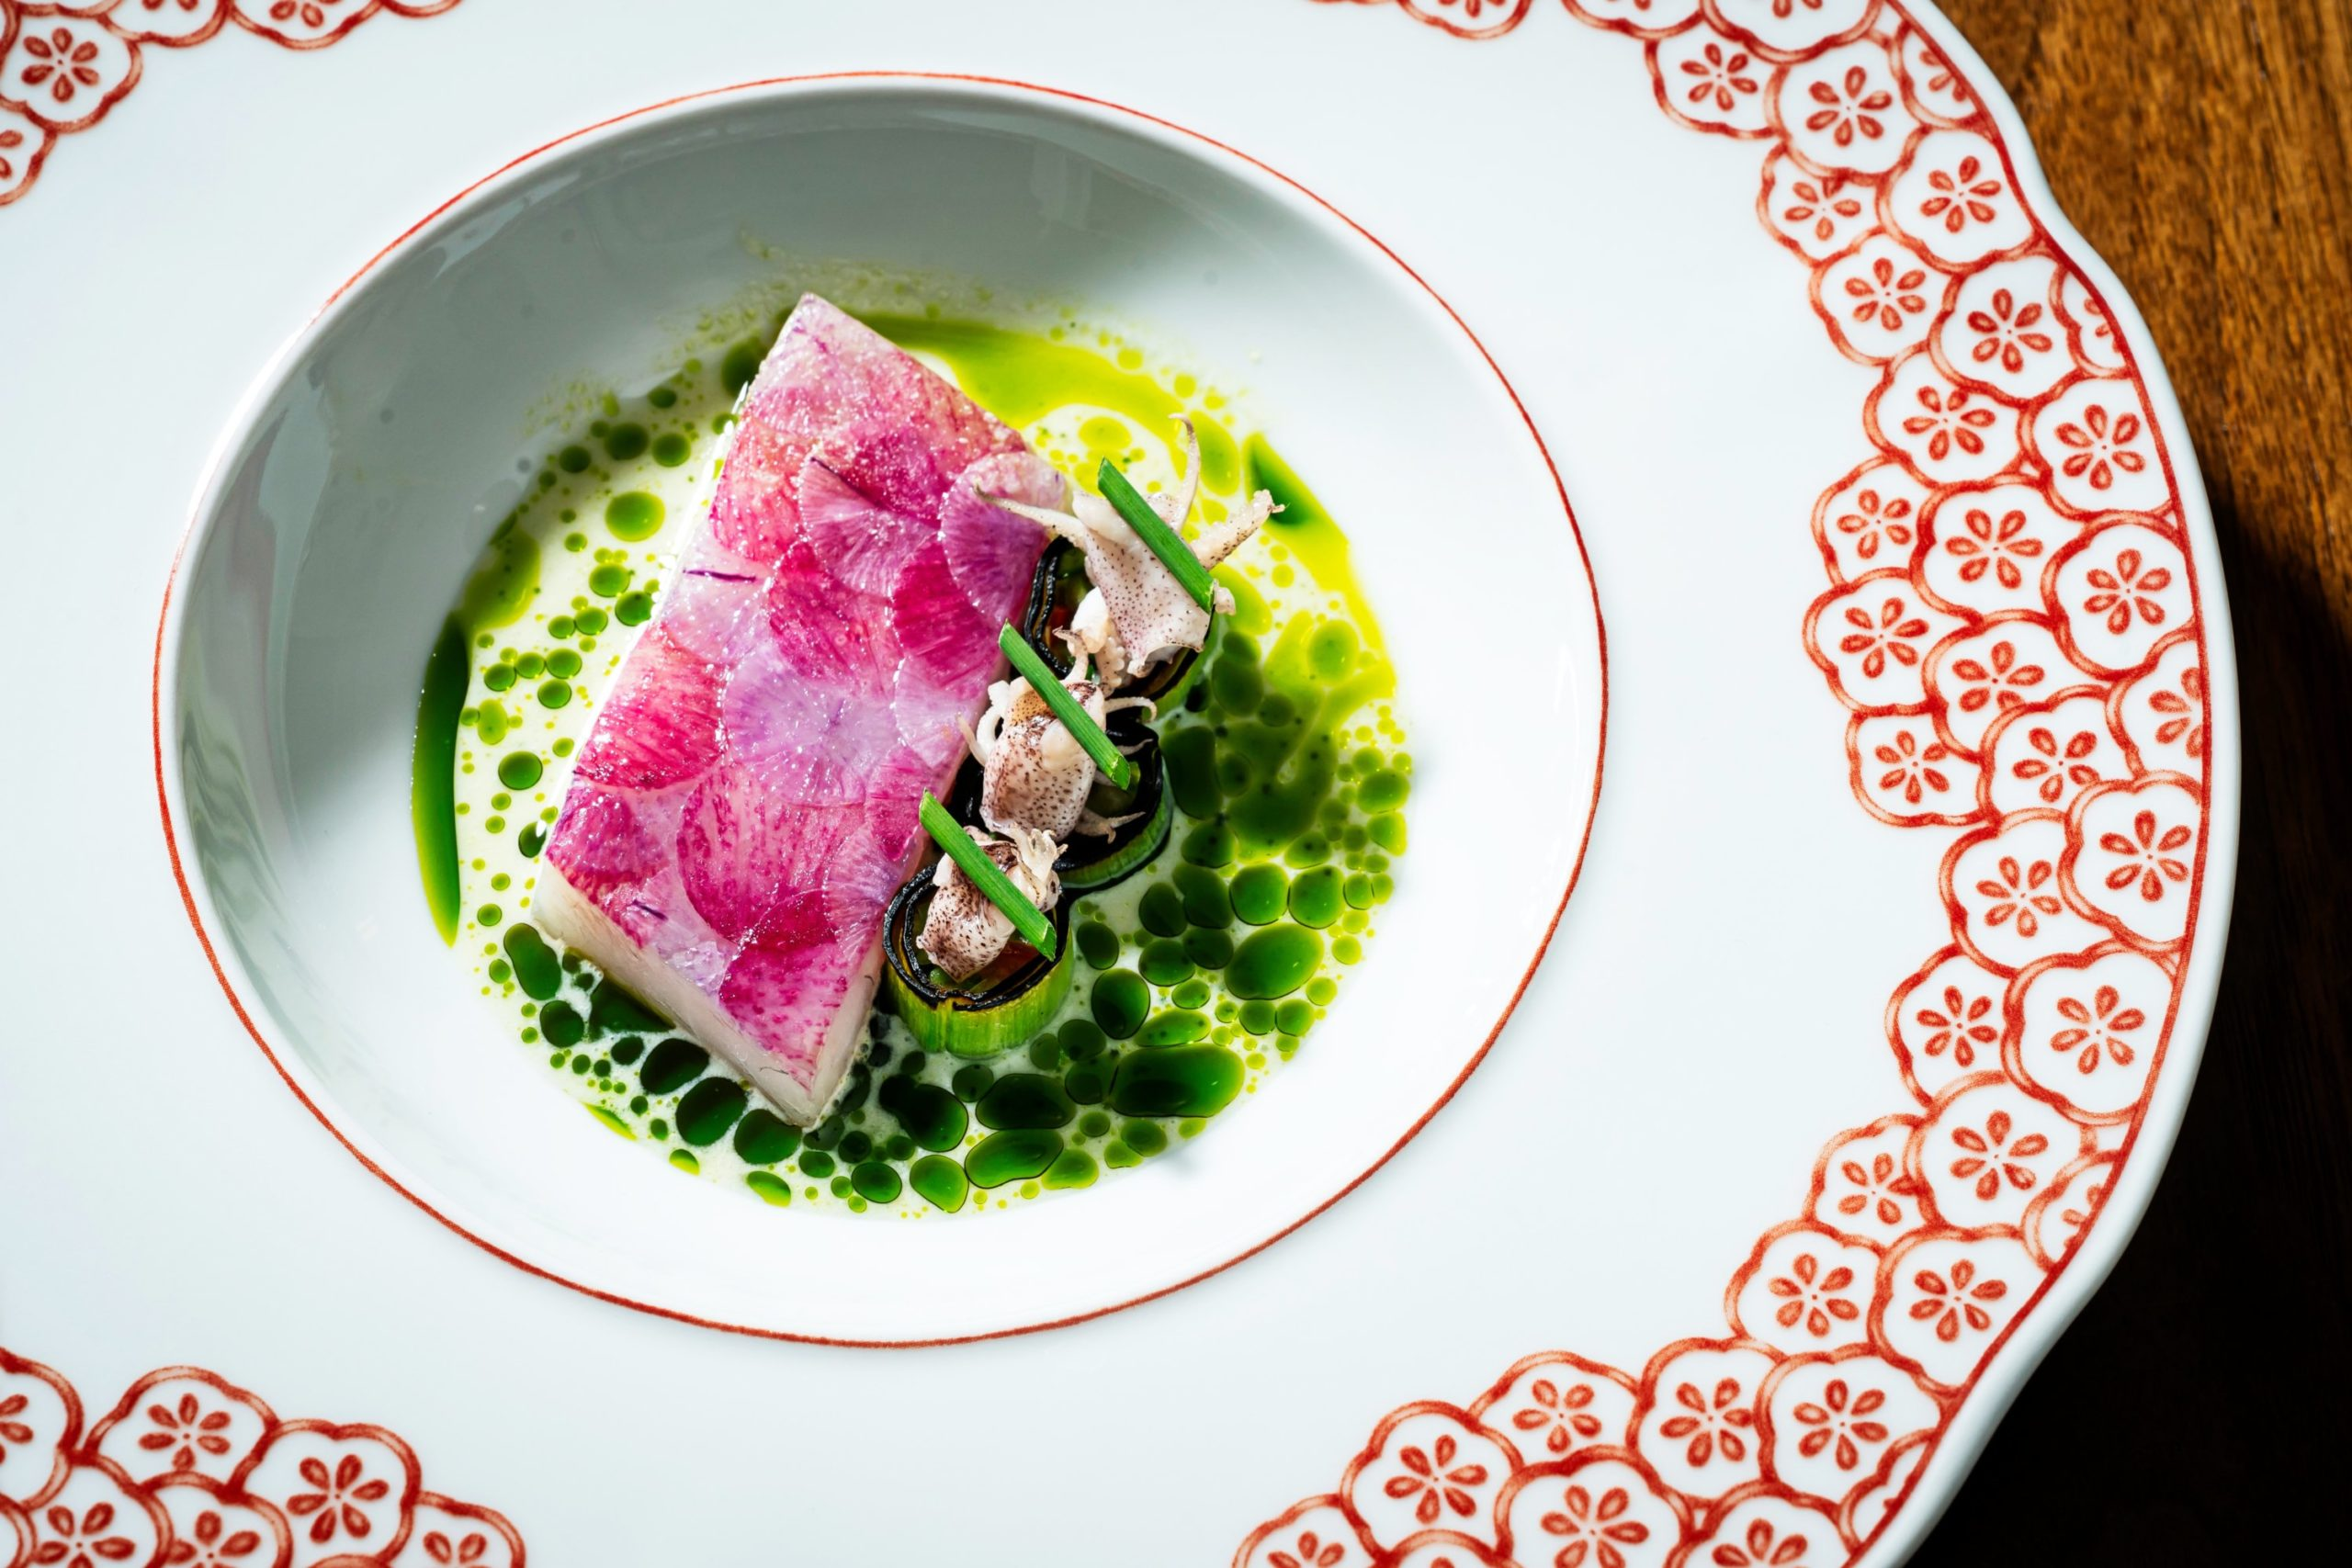 How We Chose the 100 Very Best Restaurants